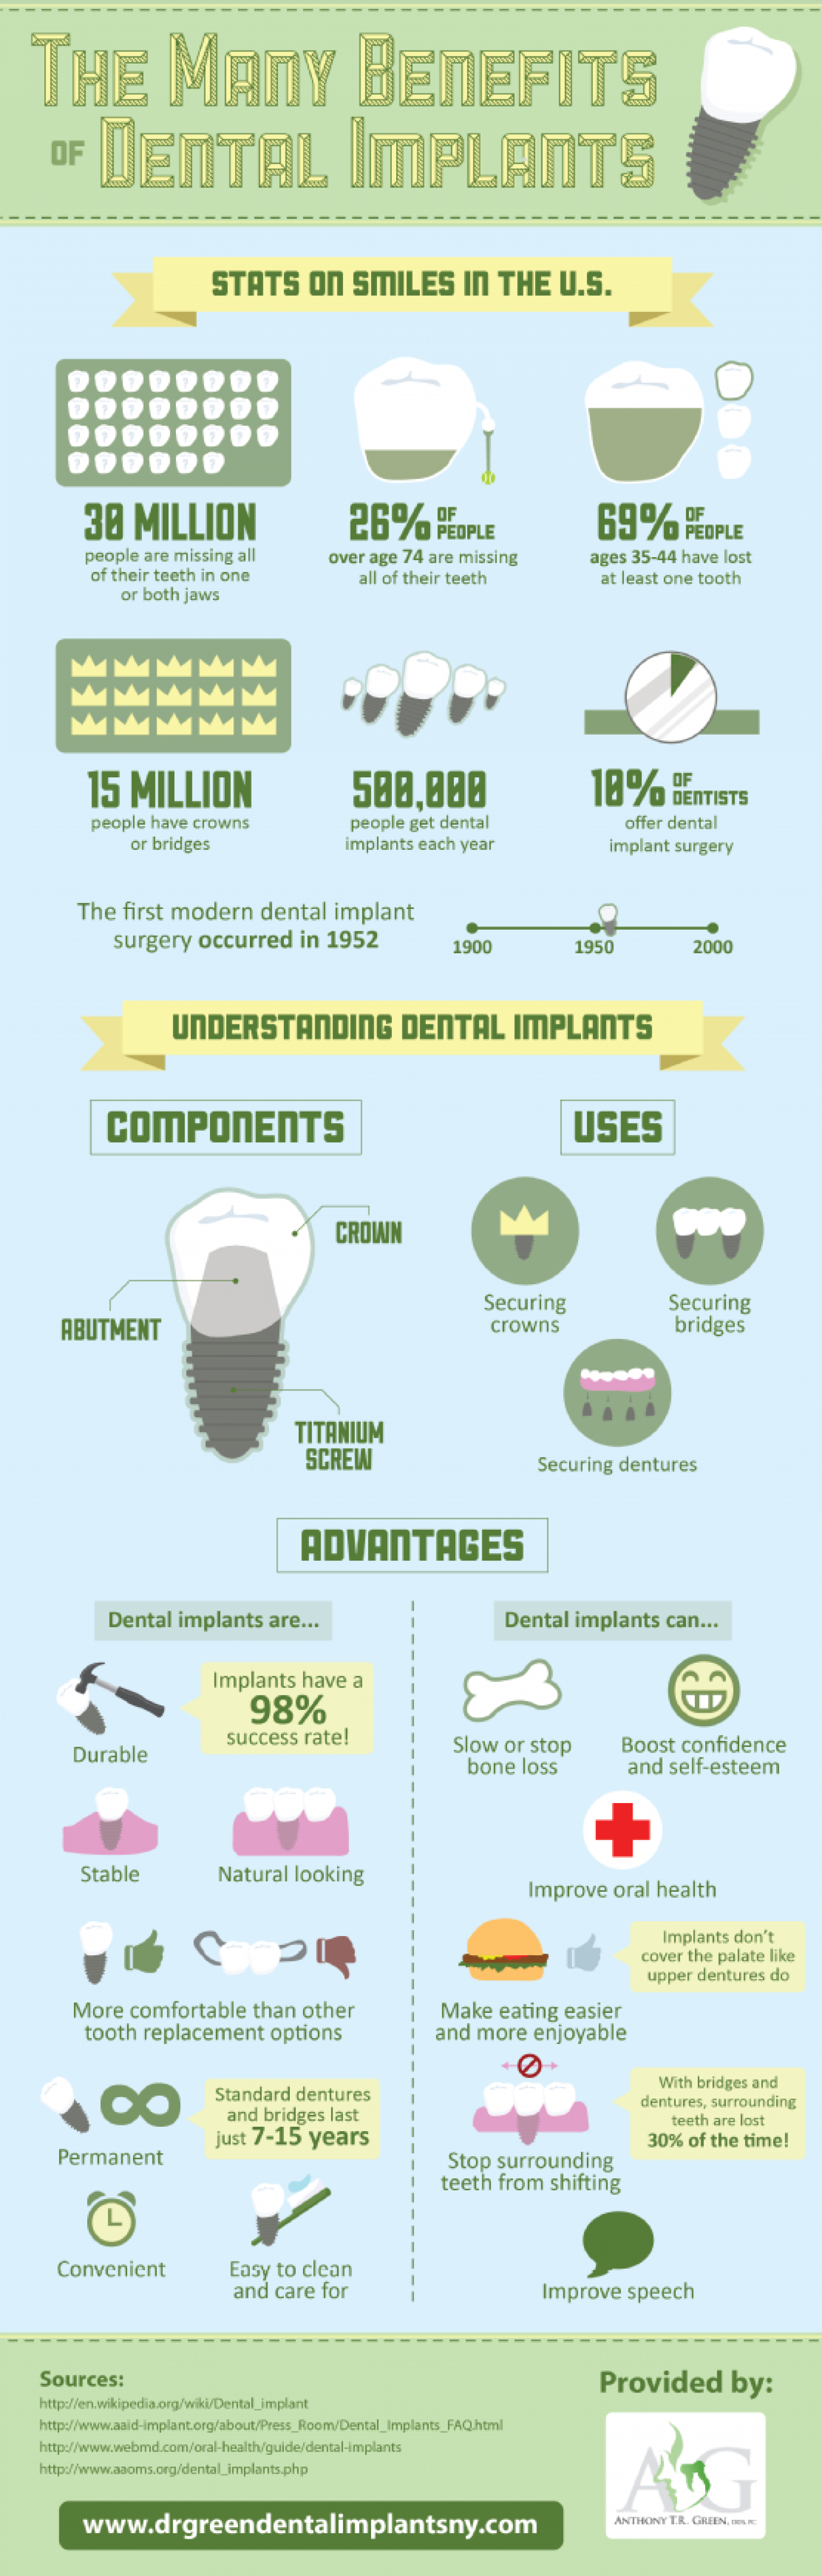 The Many Benefits of Dental Implants Infographic